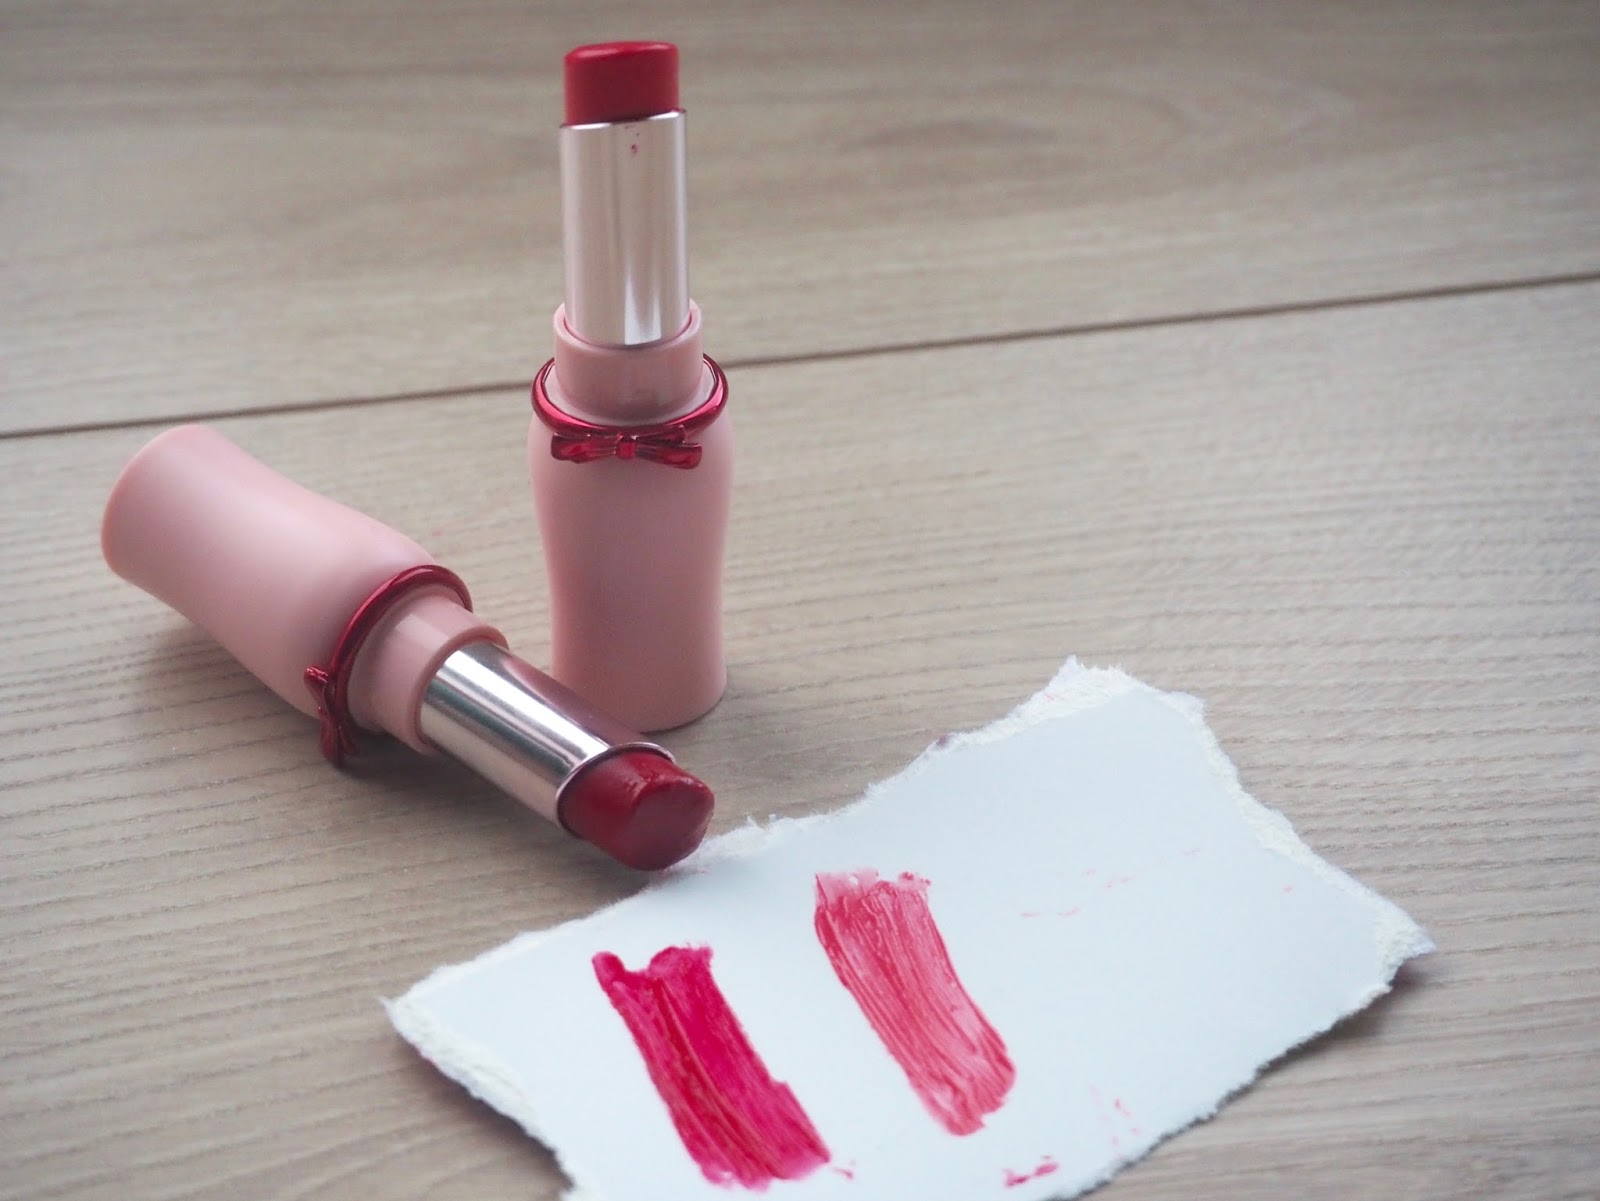 Etude House Dear My Enamel Lips-Talk Review